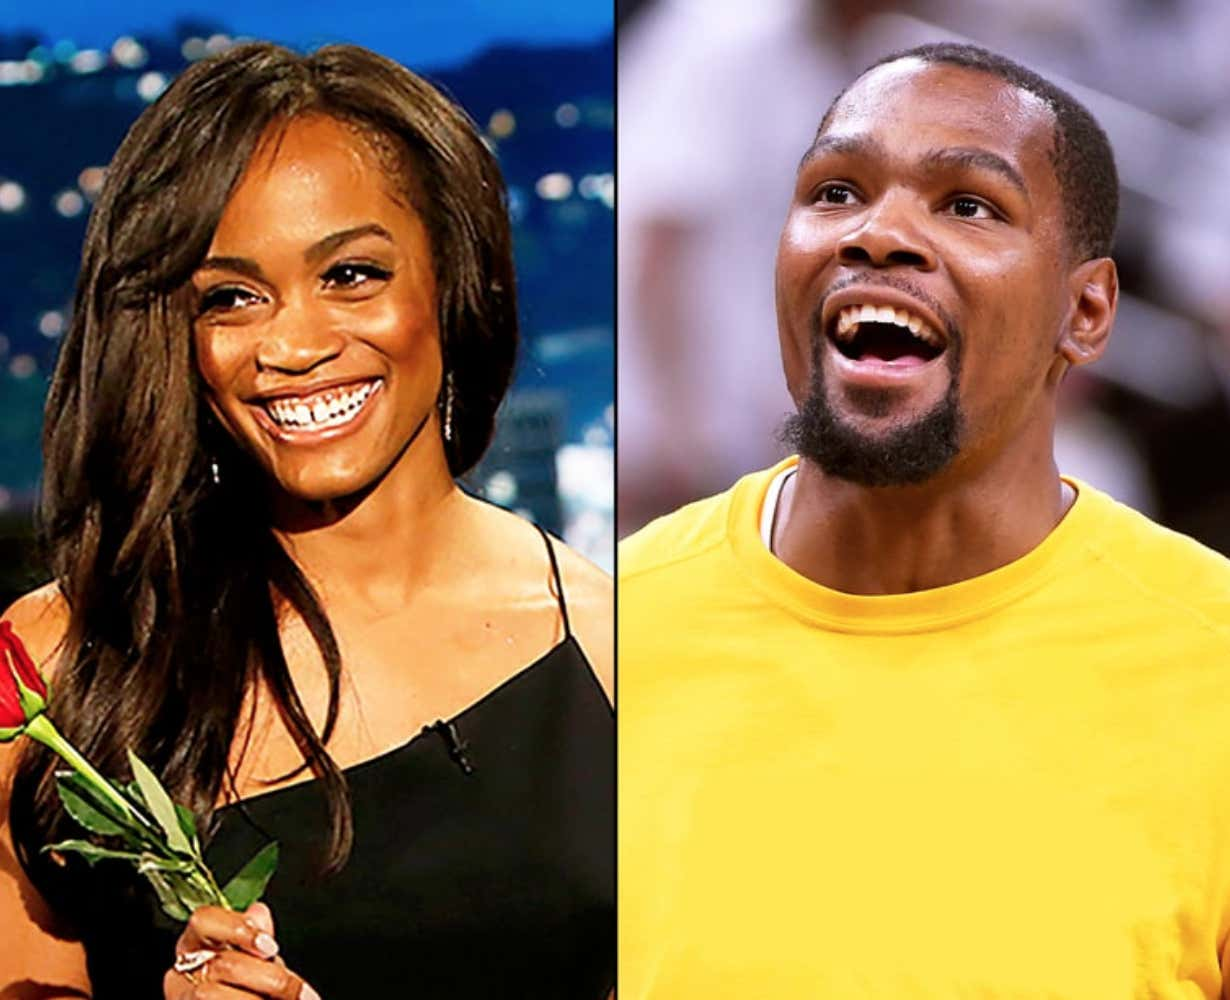 rachel the bachelorette reportedly dated kevin durant in college